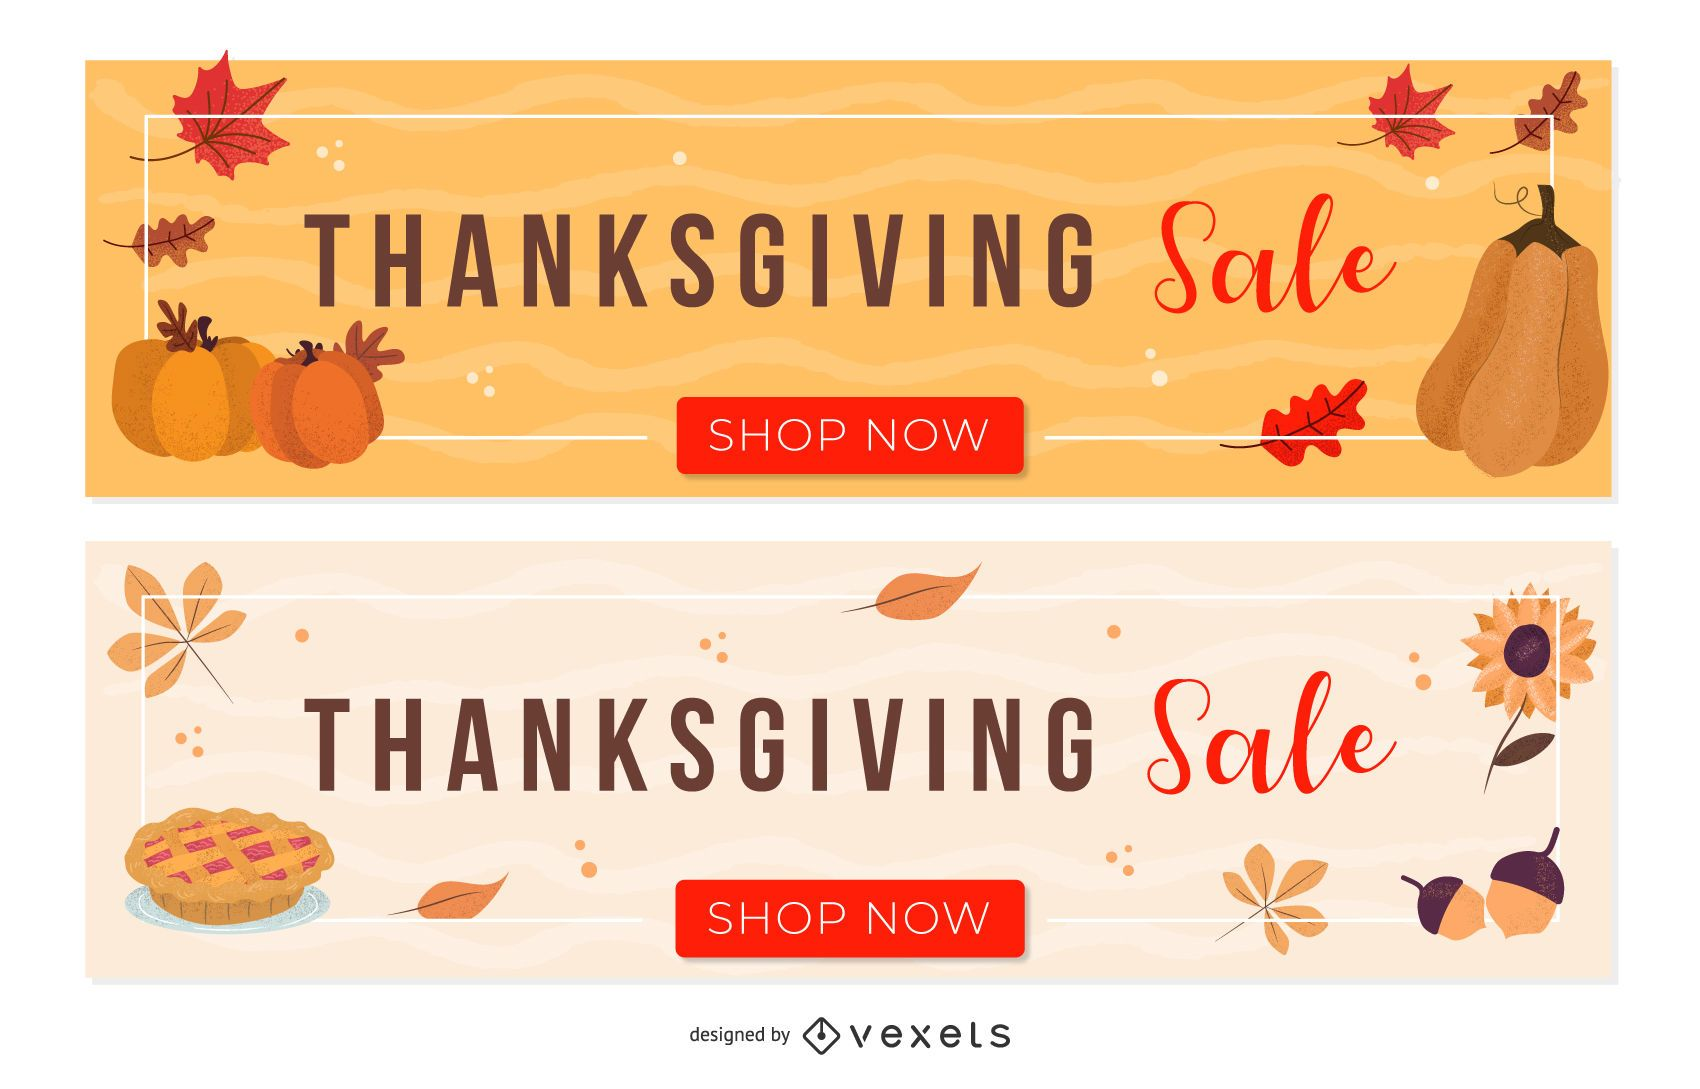 Thanksgiving Sale Set In 2020 Thanksgiving Sale Holiday Banner Banner Template